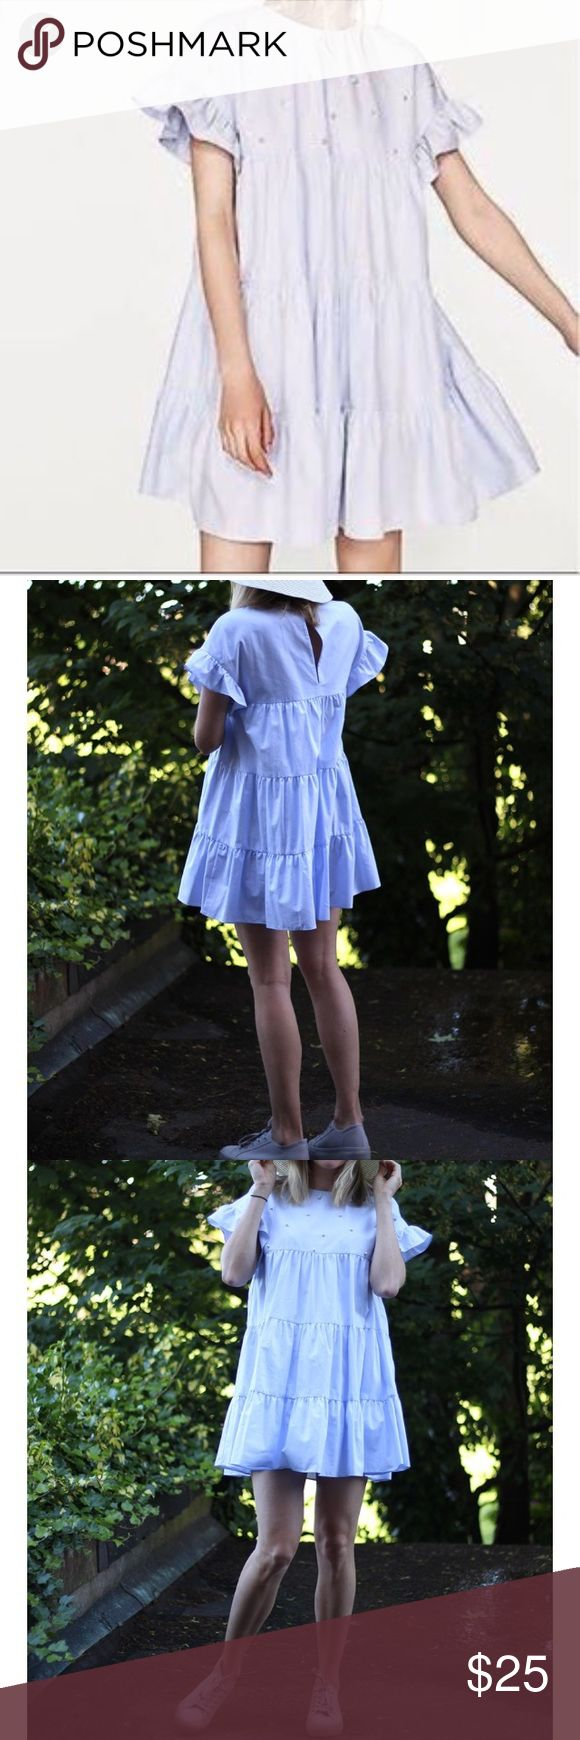 Zara Pearled Baby Doll Dress Adorable pearled Zara baby doll dress in pale blue. Great condition! Zara Dresses Mini